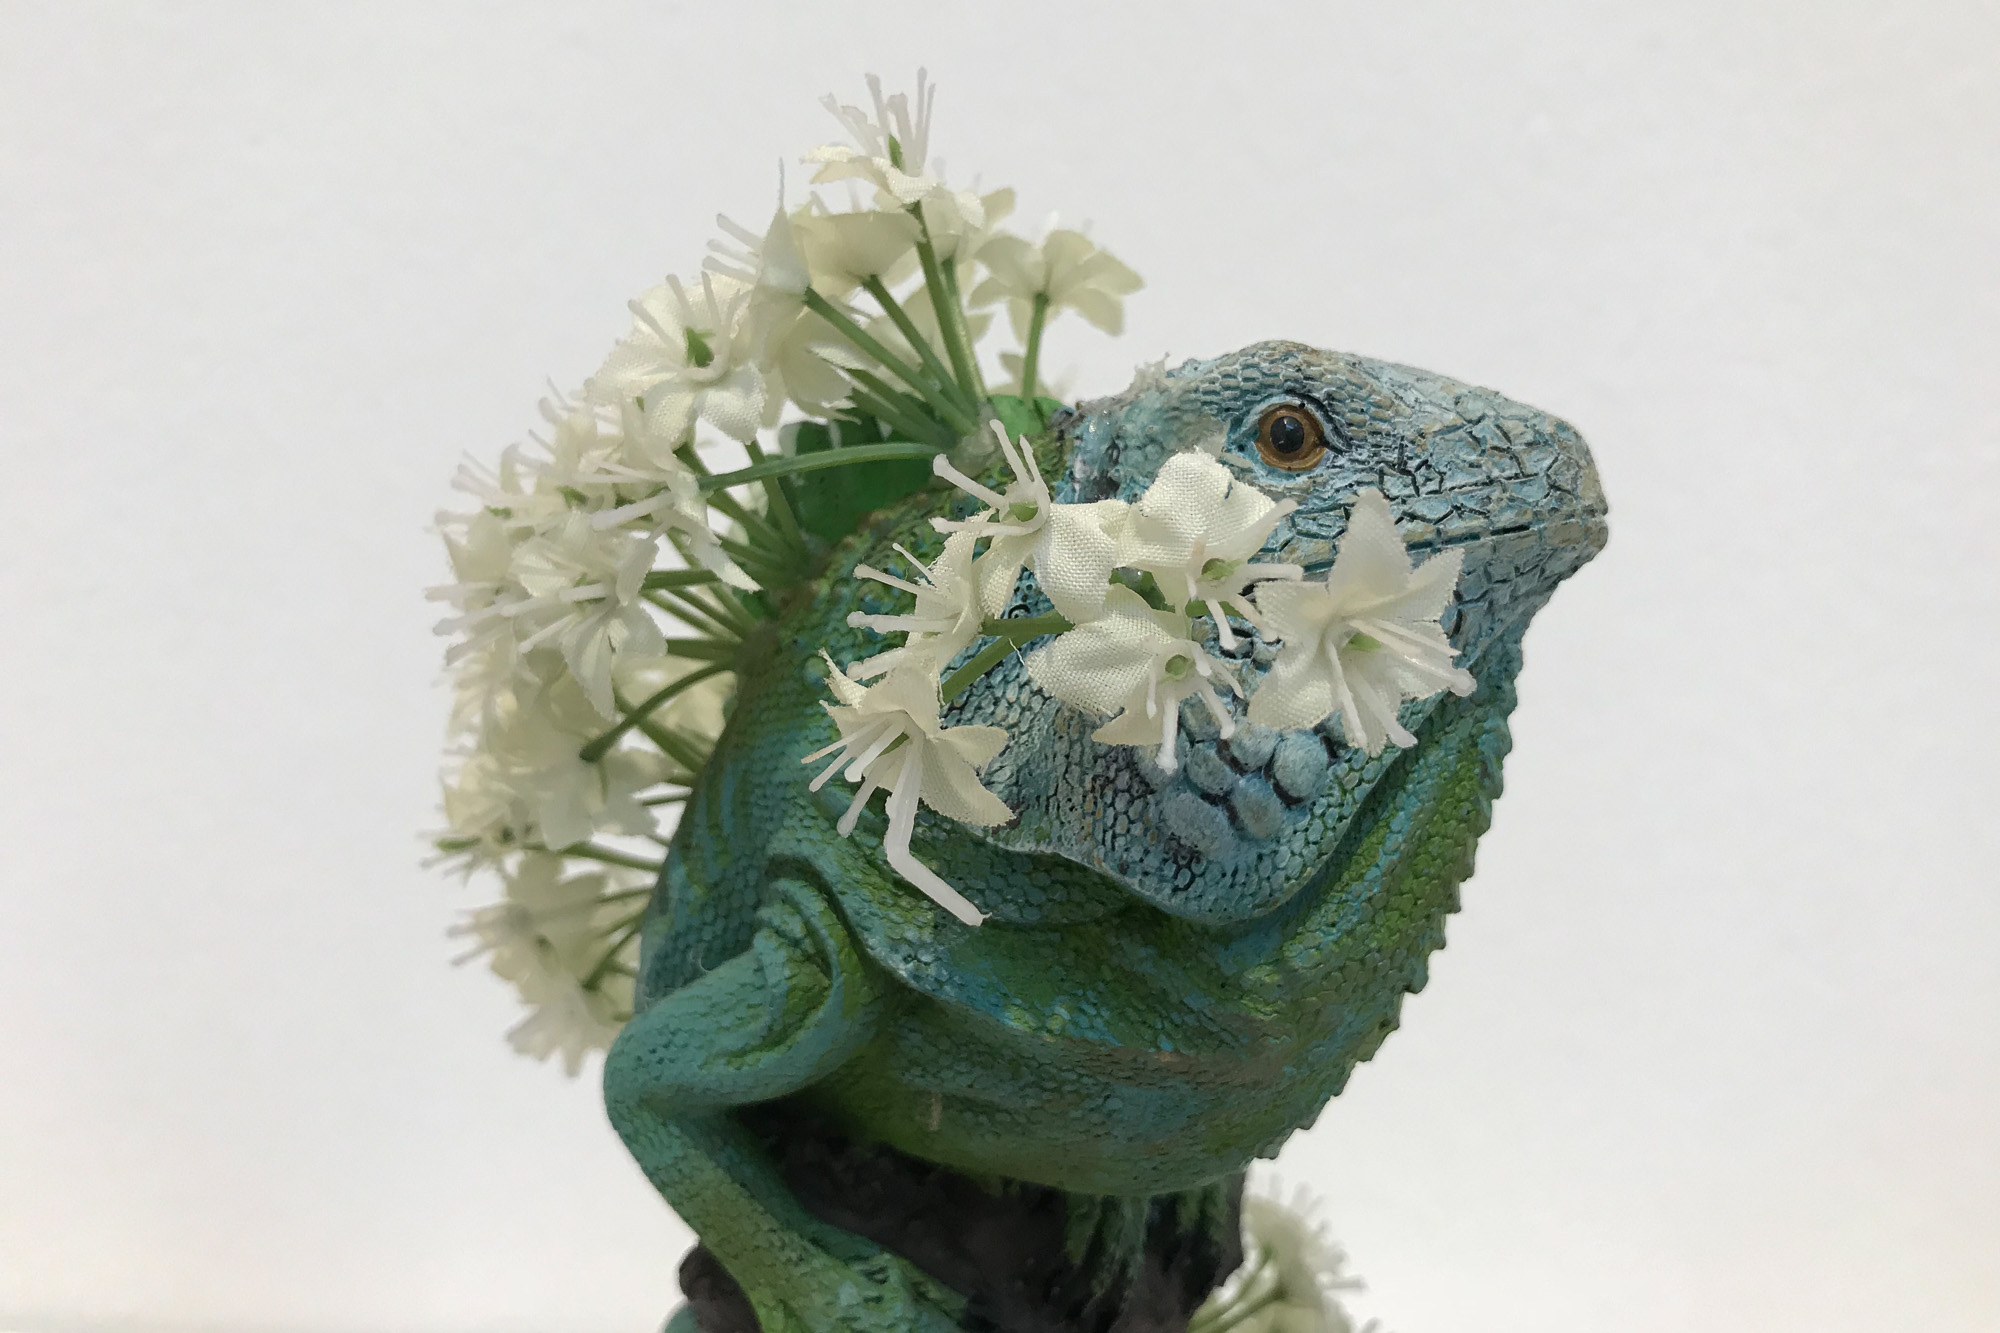 A close photo of a model of a lizard with flowers growing out of it's back.